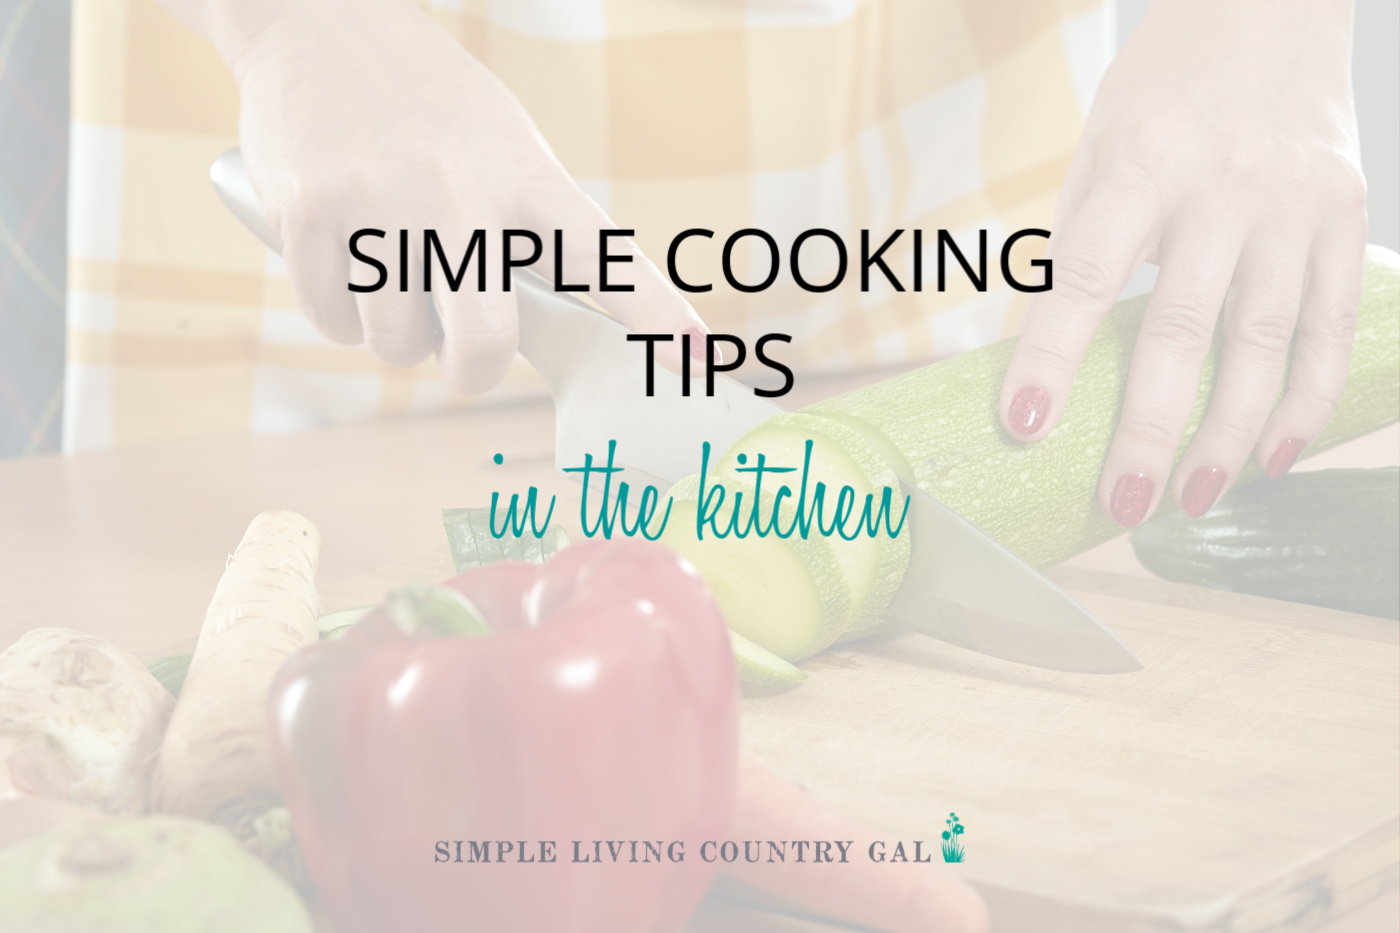 Simple Cooking Tips for the Kitchen